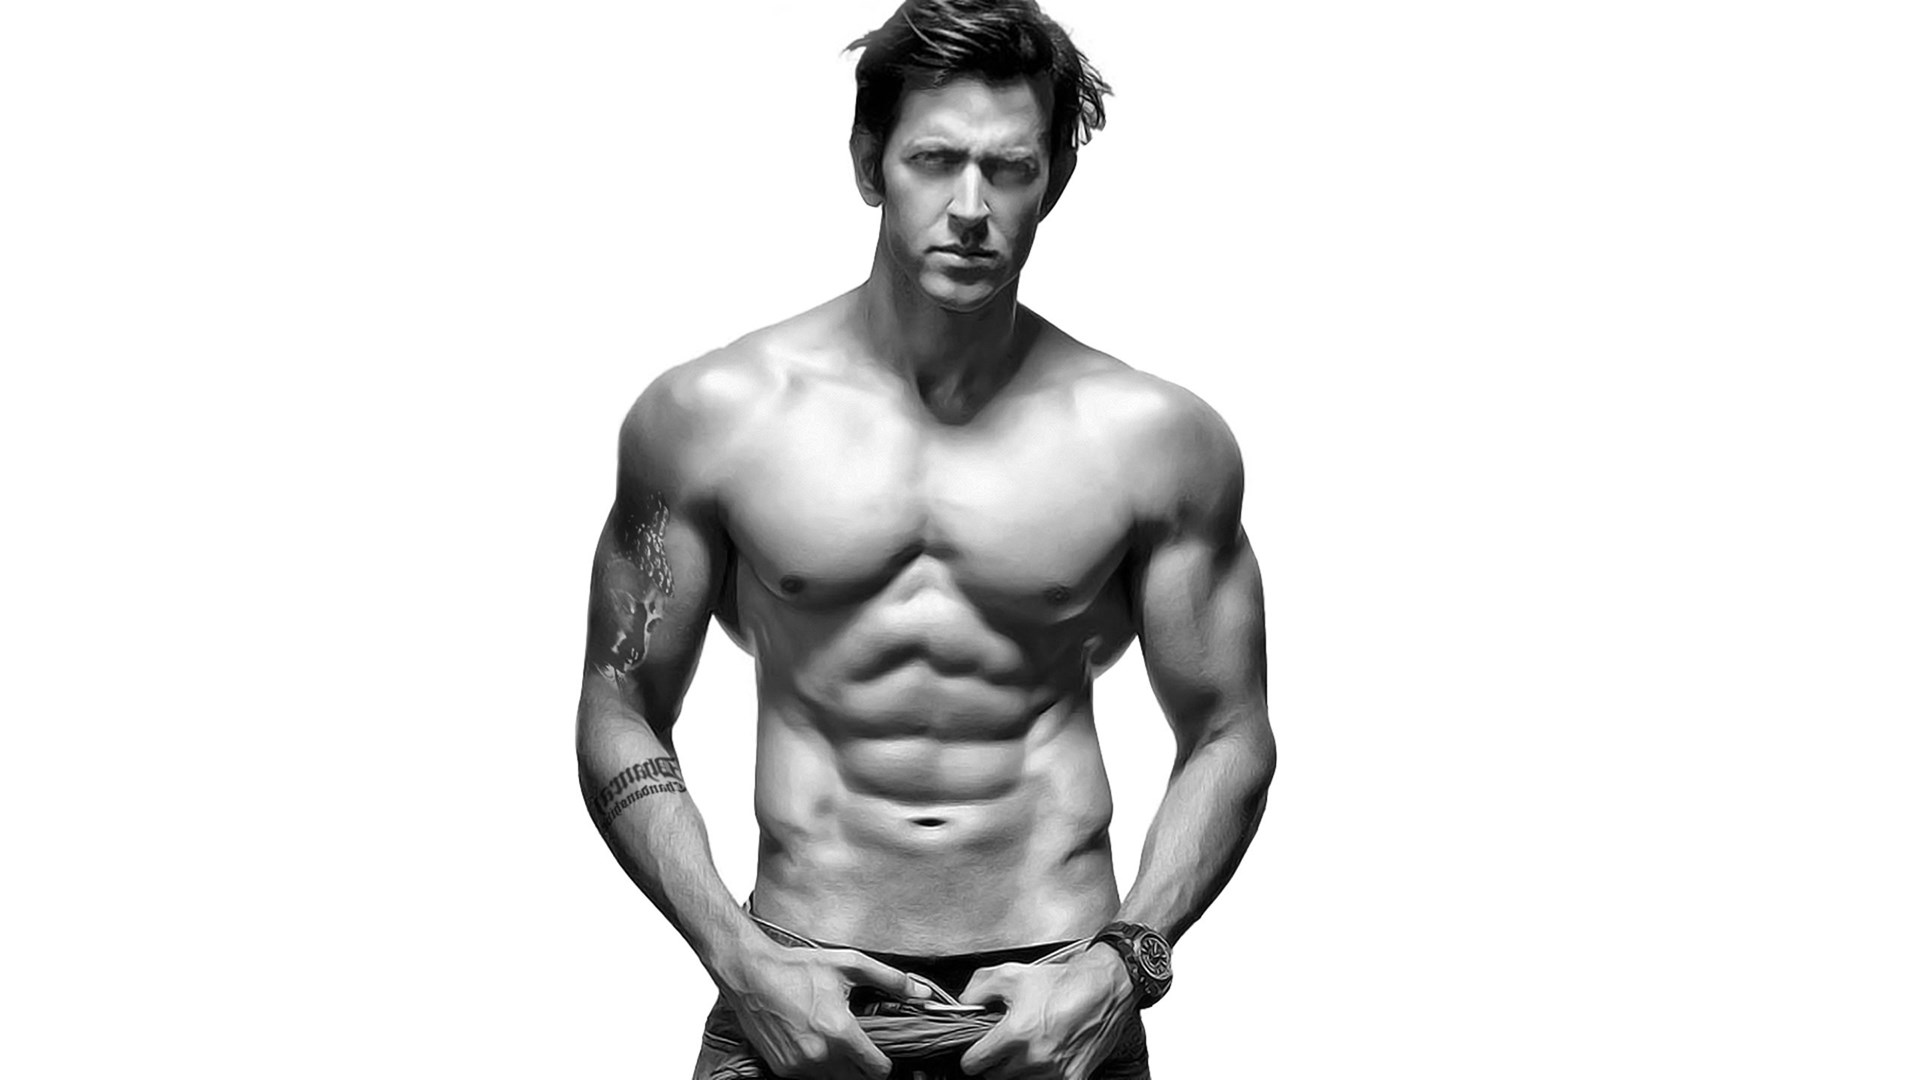 Six Pack Abs Body Of Hrithik Roshan Without Shirt HD Photo ...